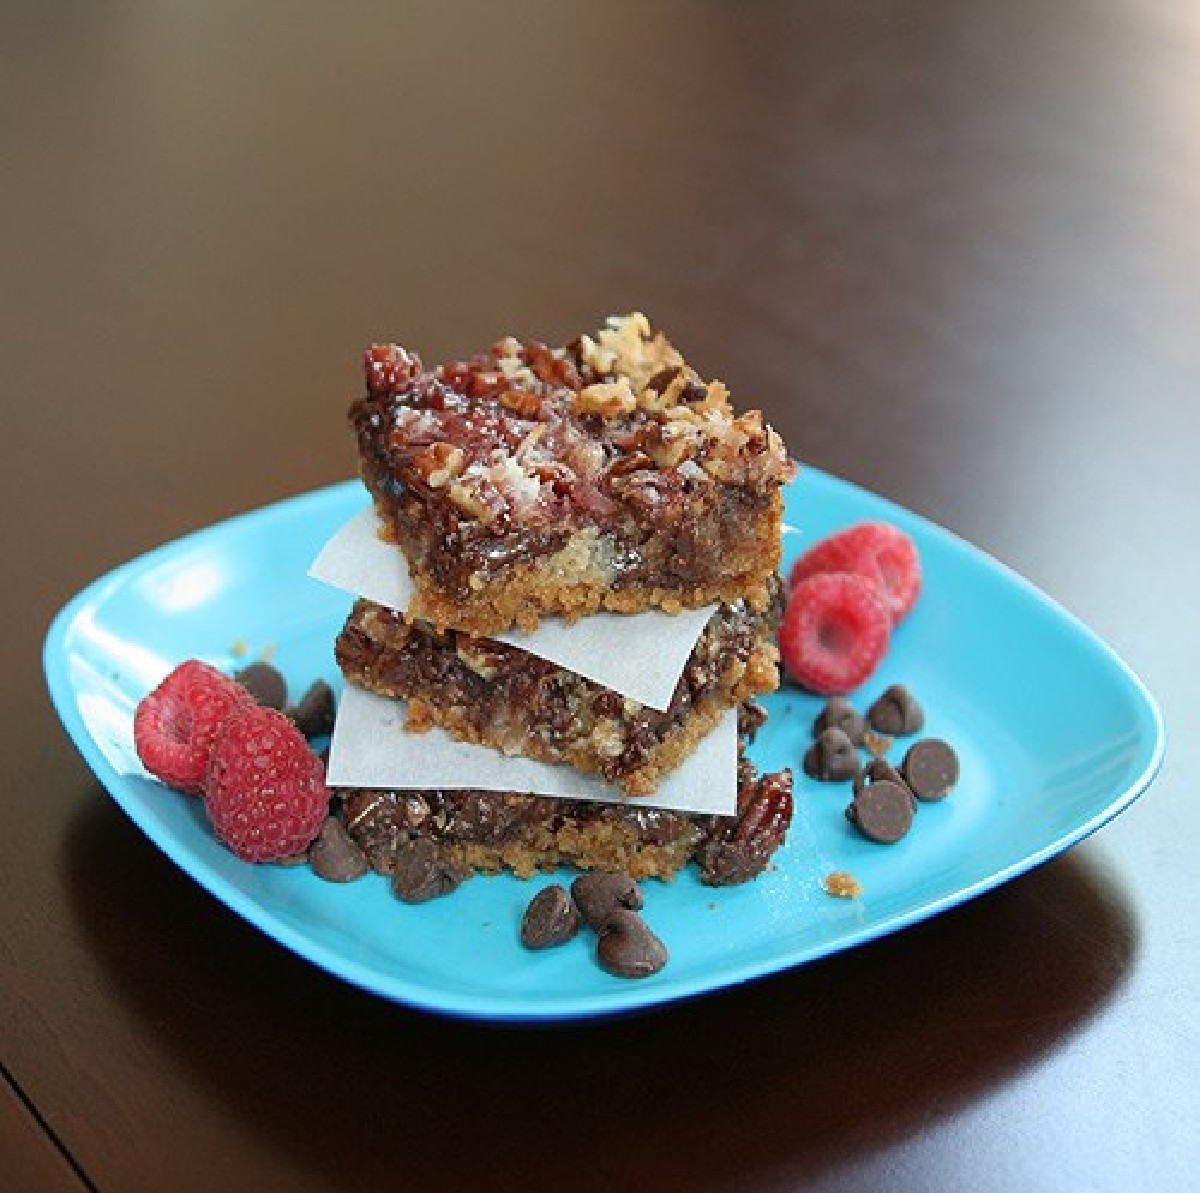 3 raspberry magic bars stacked on top of each other on a blue plate with raspberries and chocolate chips on the side